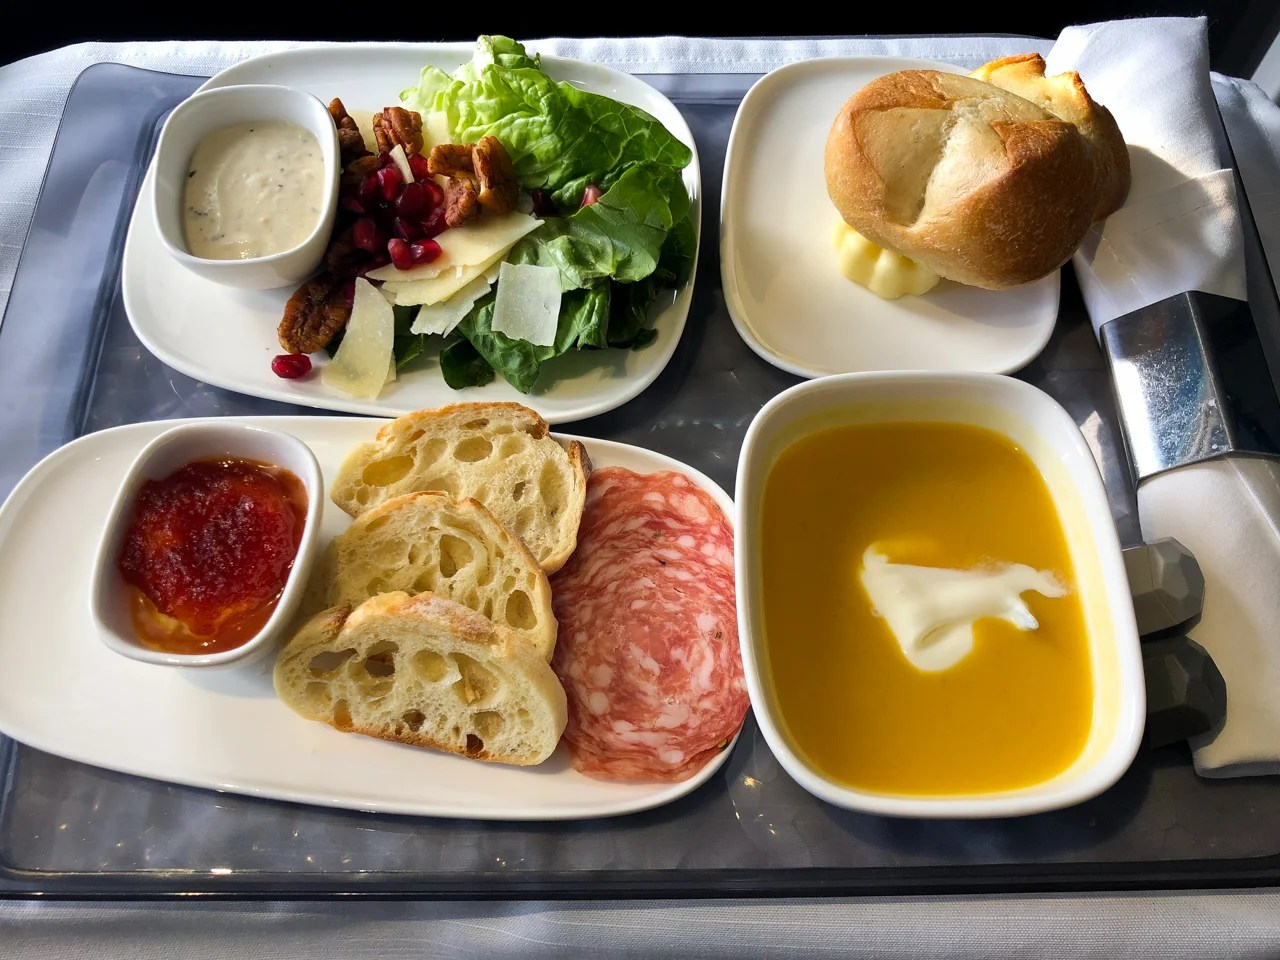 Best of the West: A Review of Delta One Suites on the A350